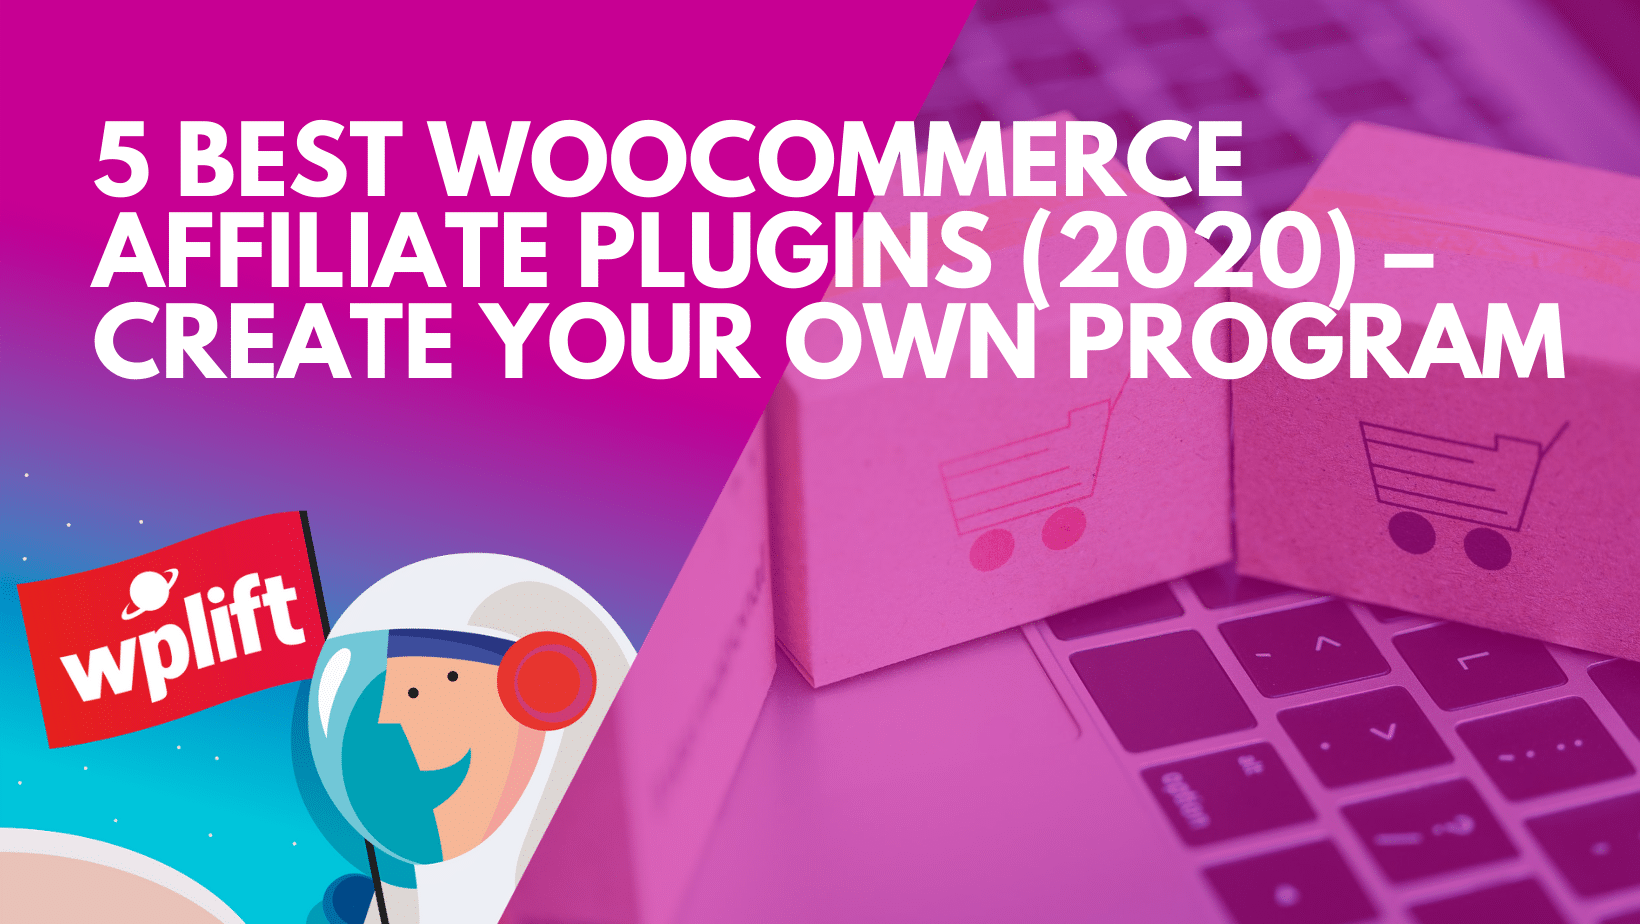 5 Best WooCommerce Affiliate Plugins (2020)